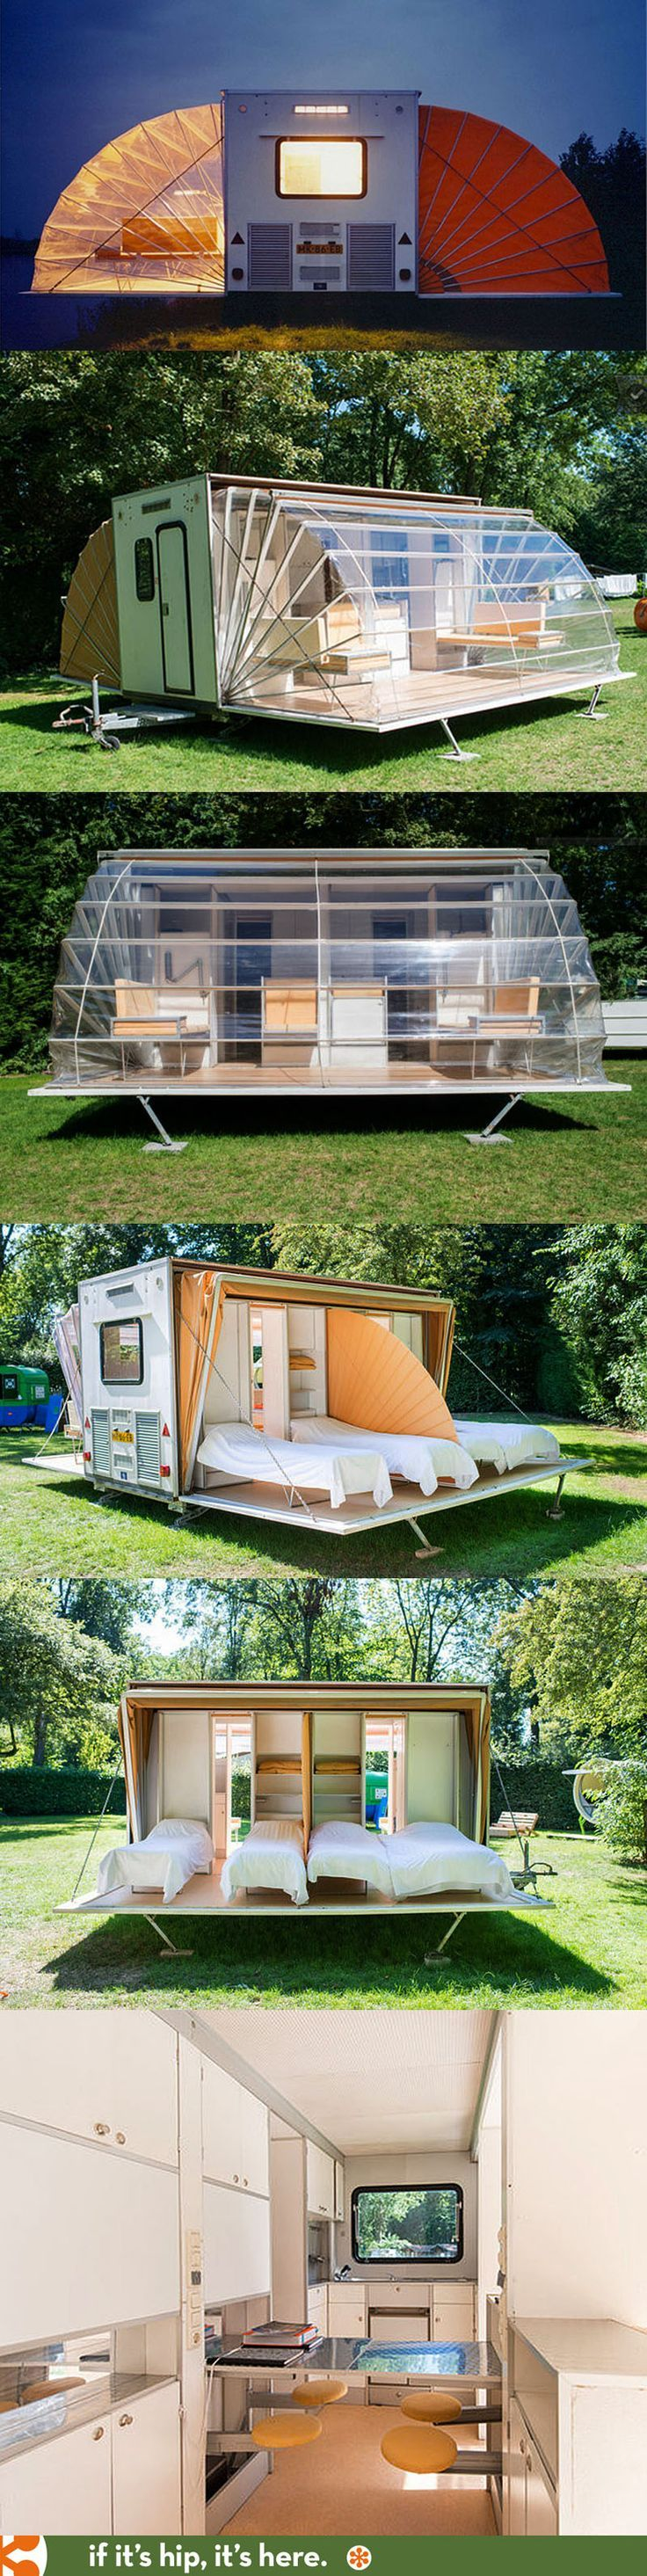 If It's Hip, It's Here: The Urban Campsite's Coolest Caravan, The Marquis by Eduard Bohtlingk. Good.